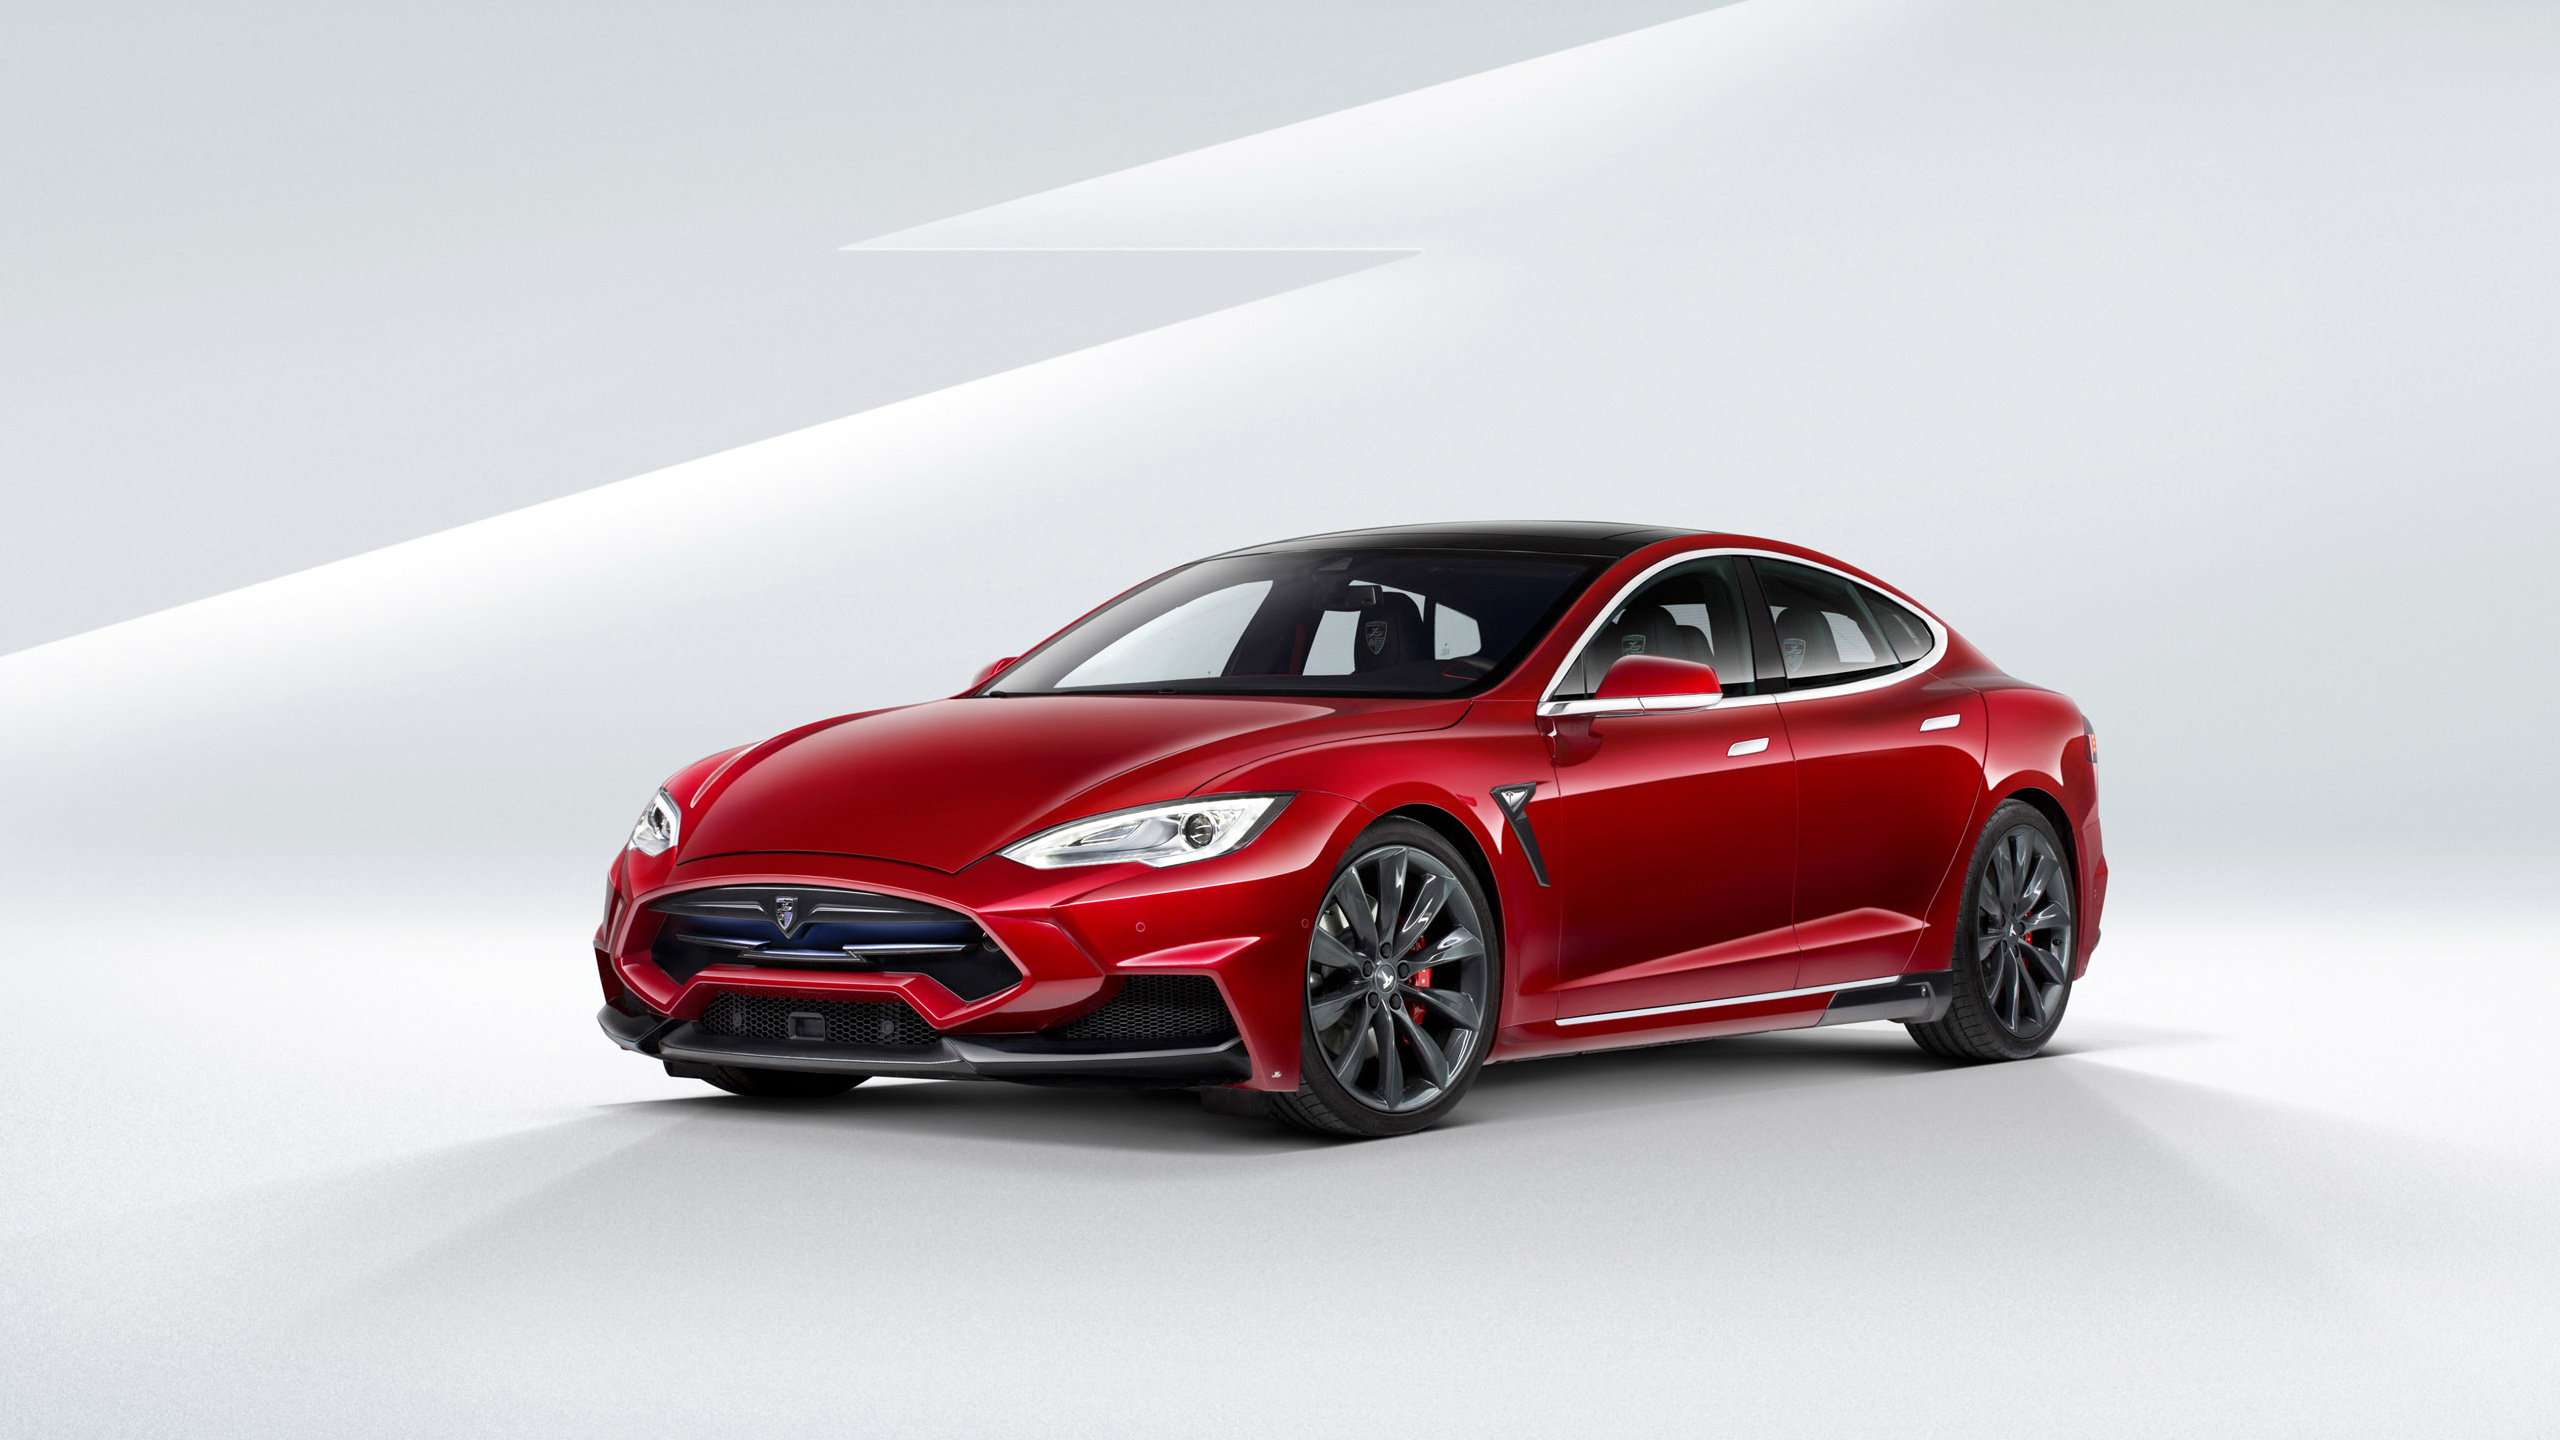 2015 larte tesla model s wallpaper hd car wallpapers id 5297. Black Bedroom Furniture Sets. Home Design Ideas